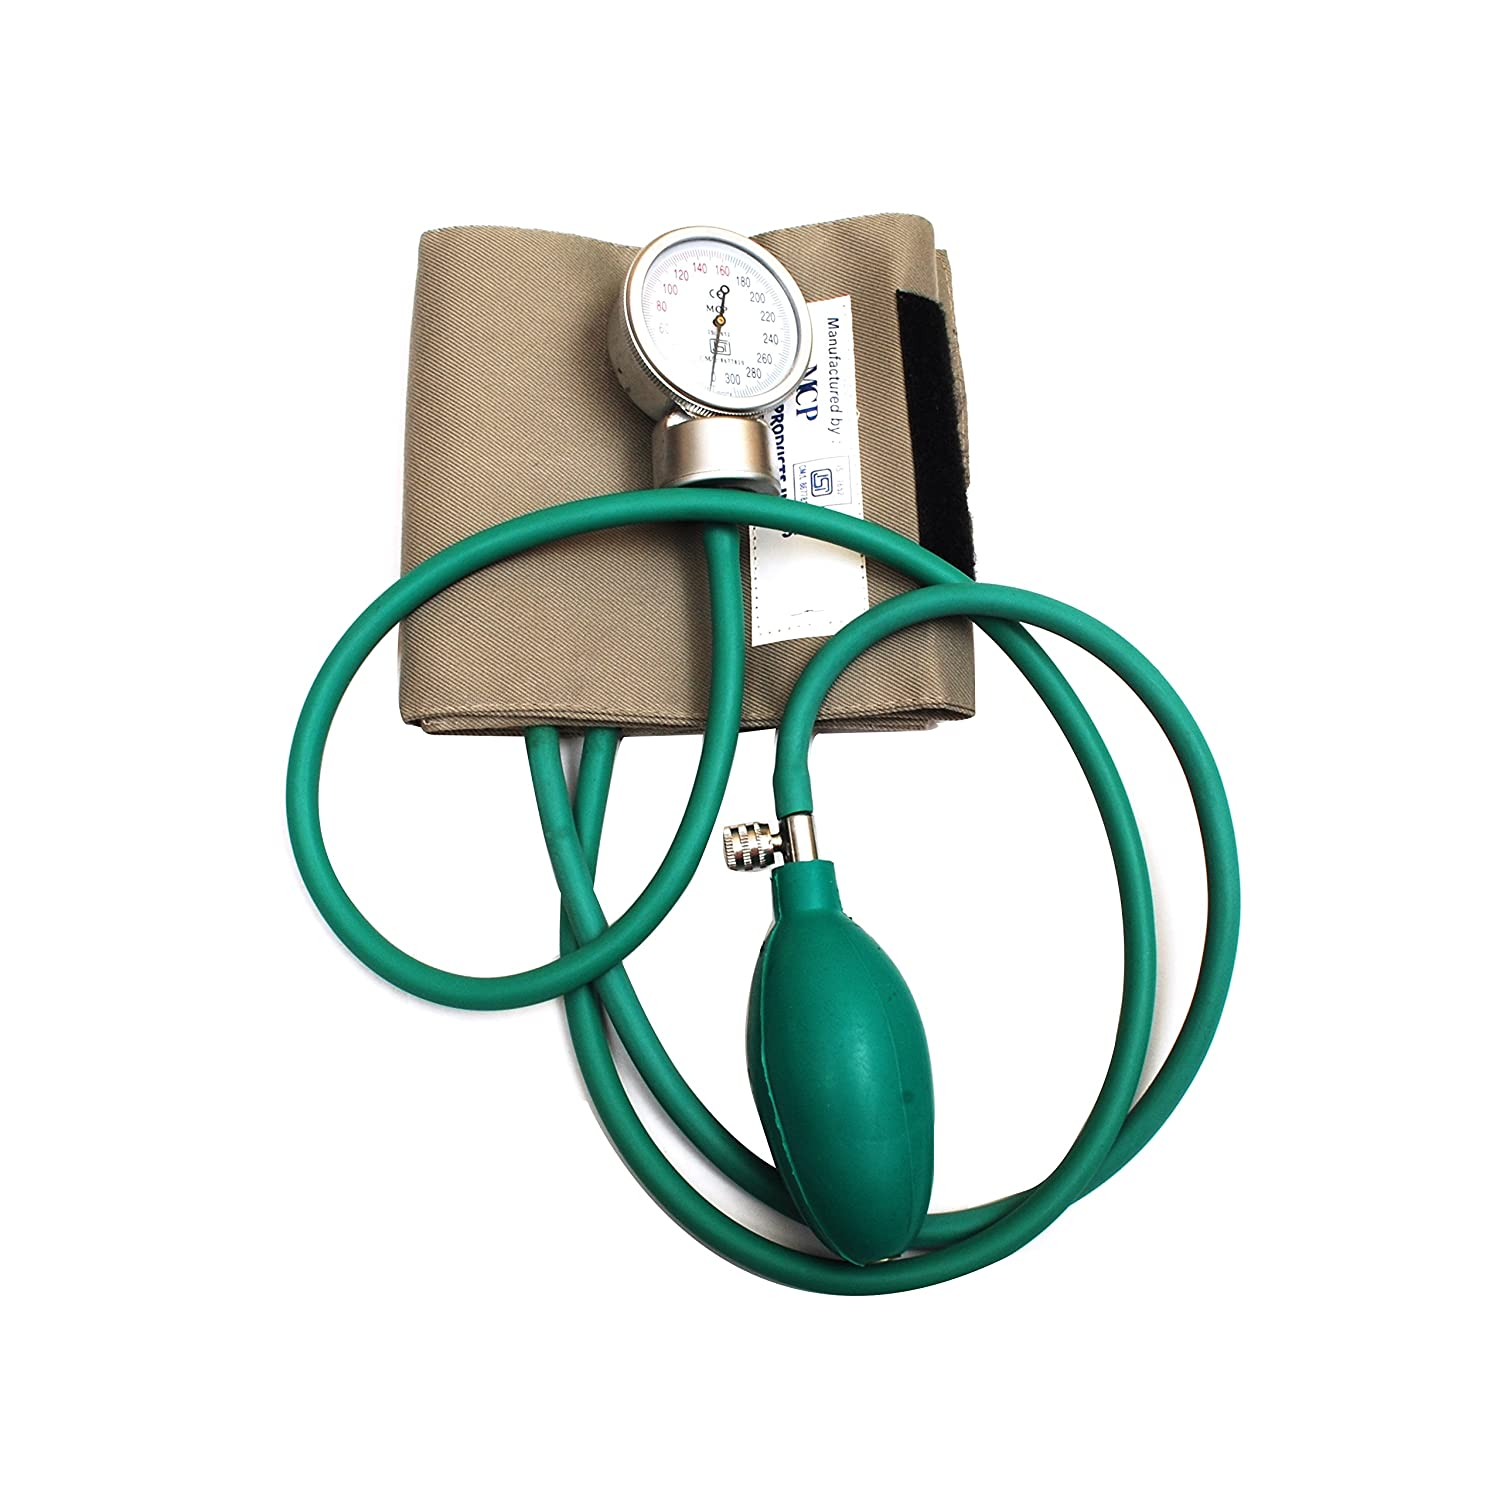 MCP Aneroid Blood Pressure Monitor